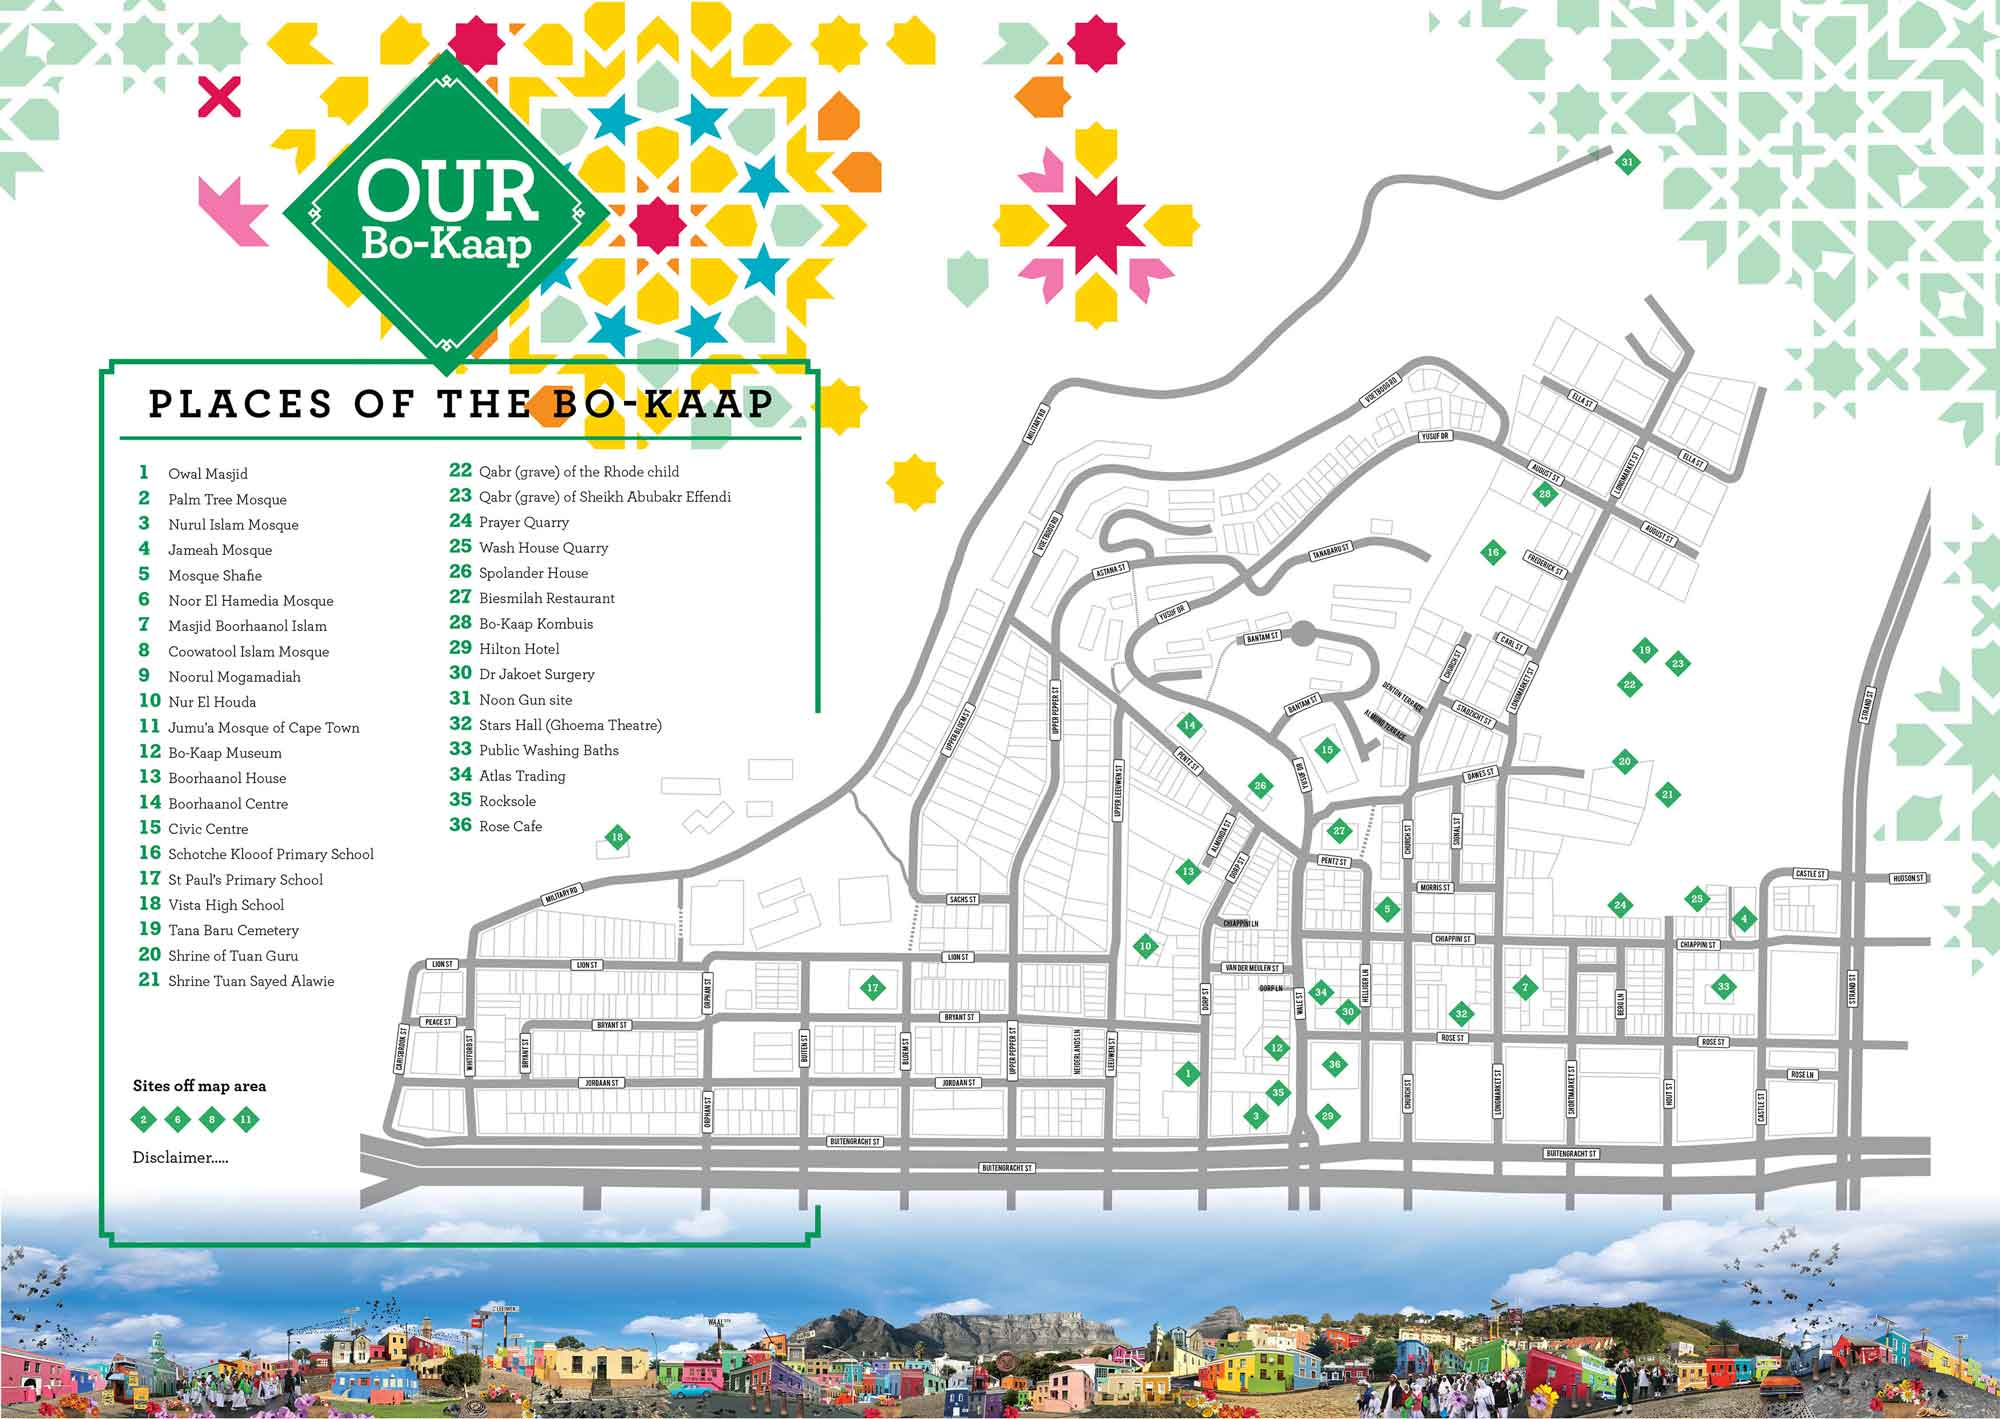 Places of the Bo-Kaap